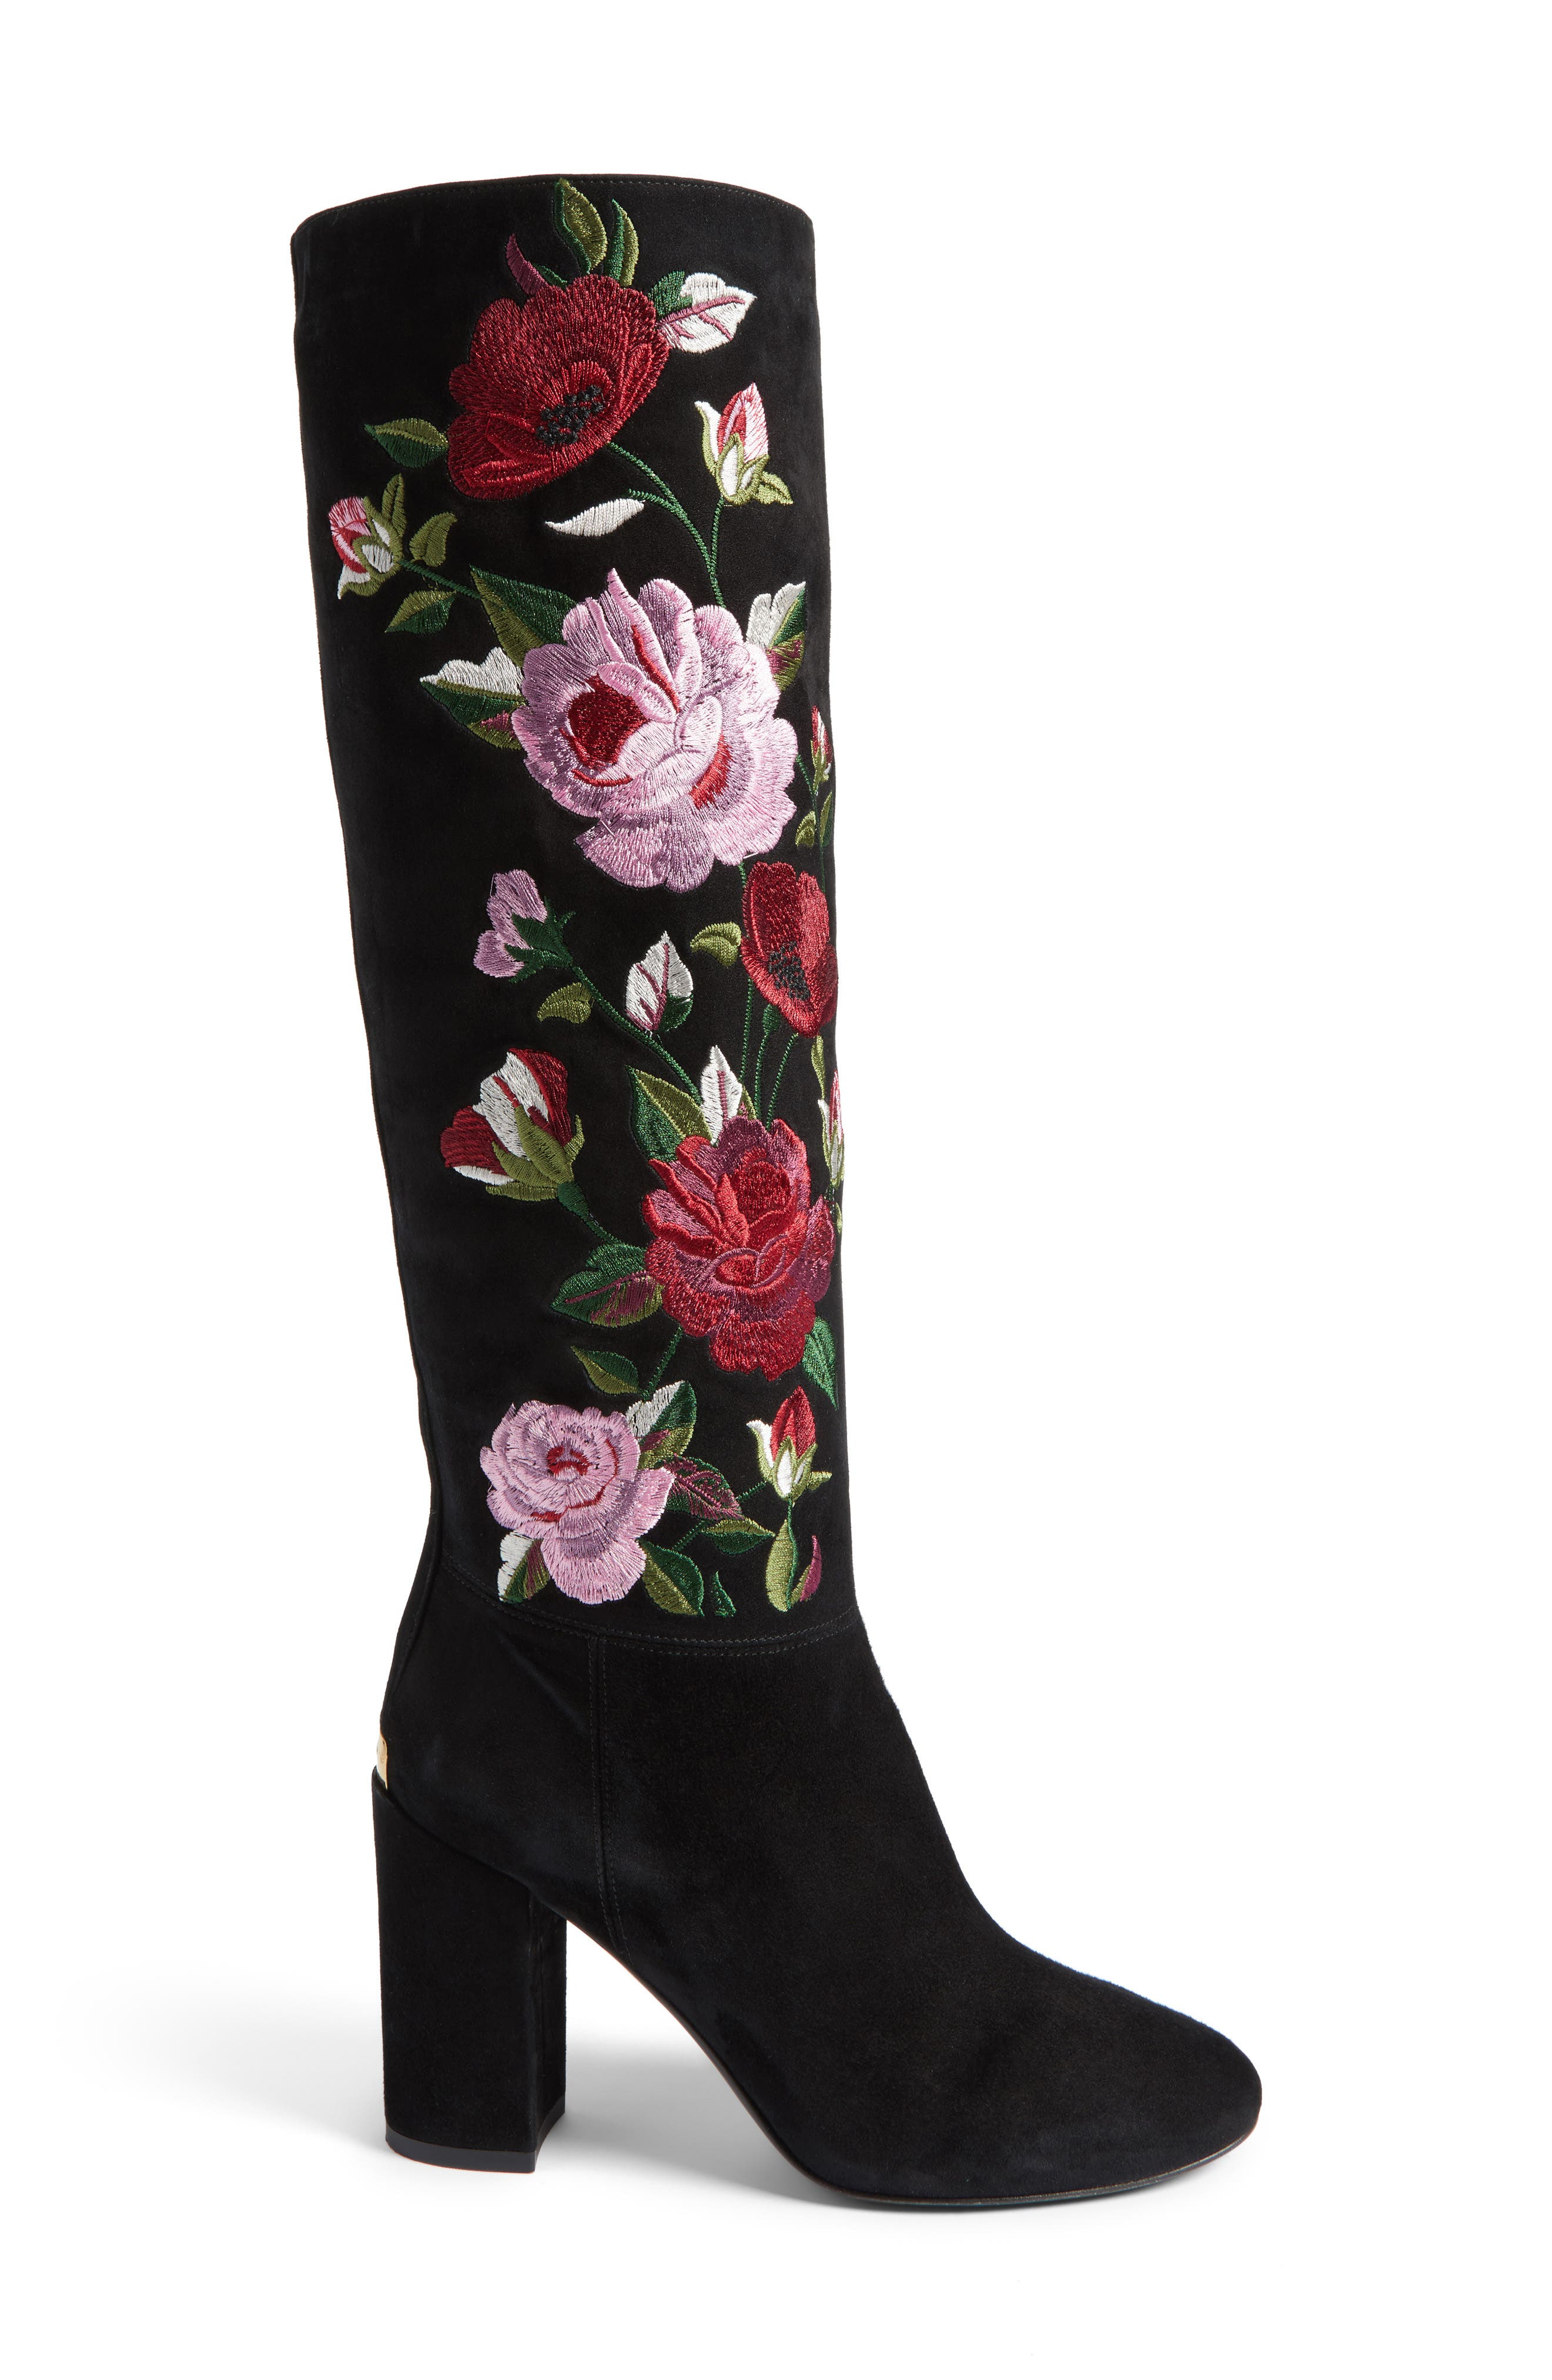 Alternate Image 3  - kate spade new york greenfield flower embroidered boot (Women)